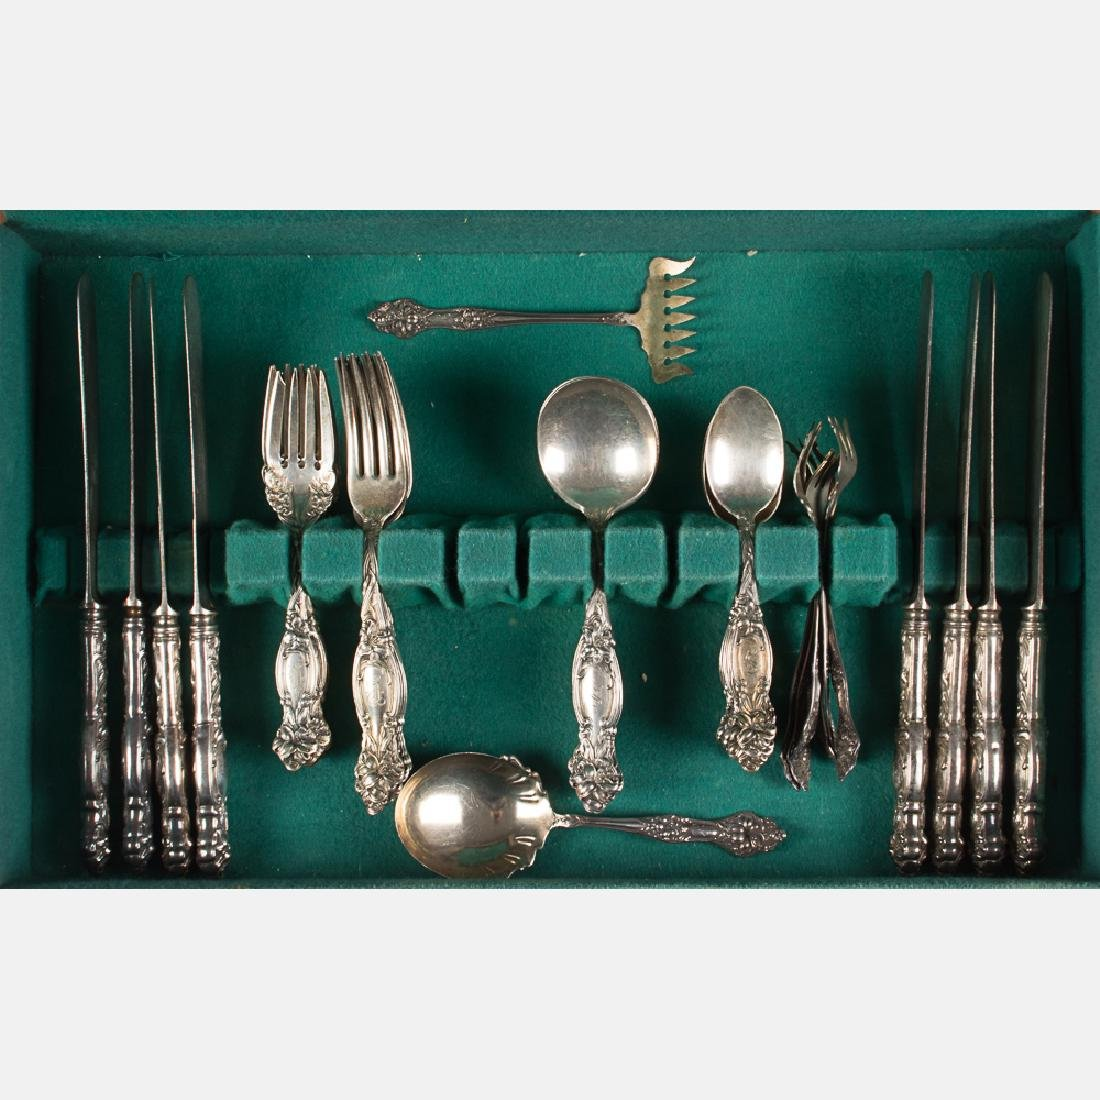 A Set of Sterling Silver Flatware Service by Simpson,